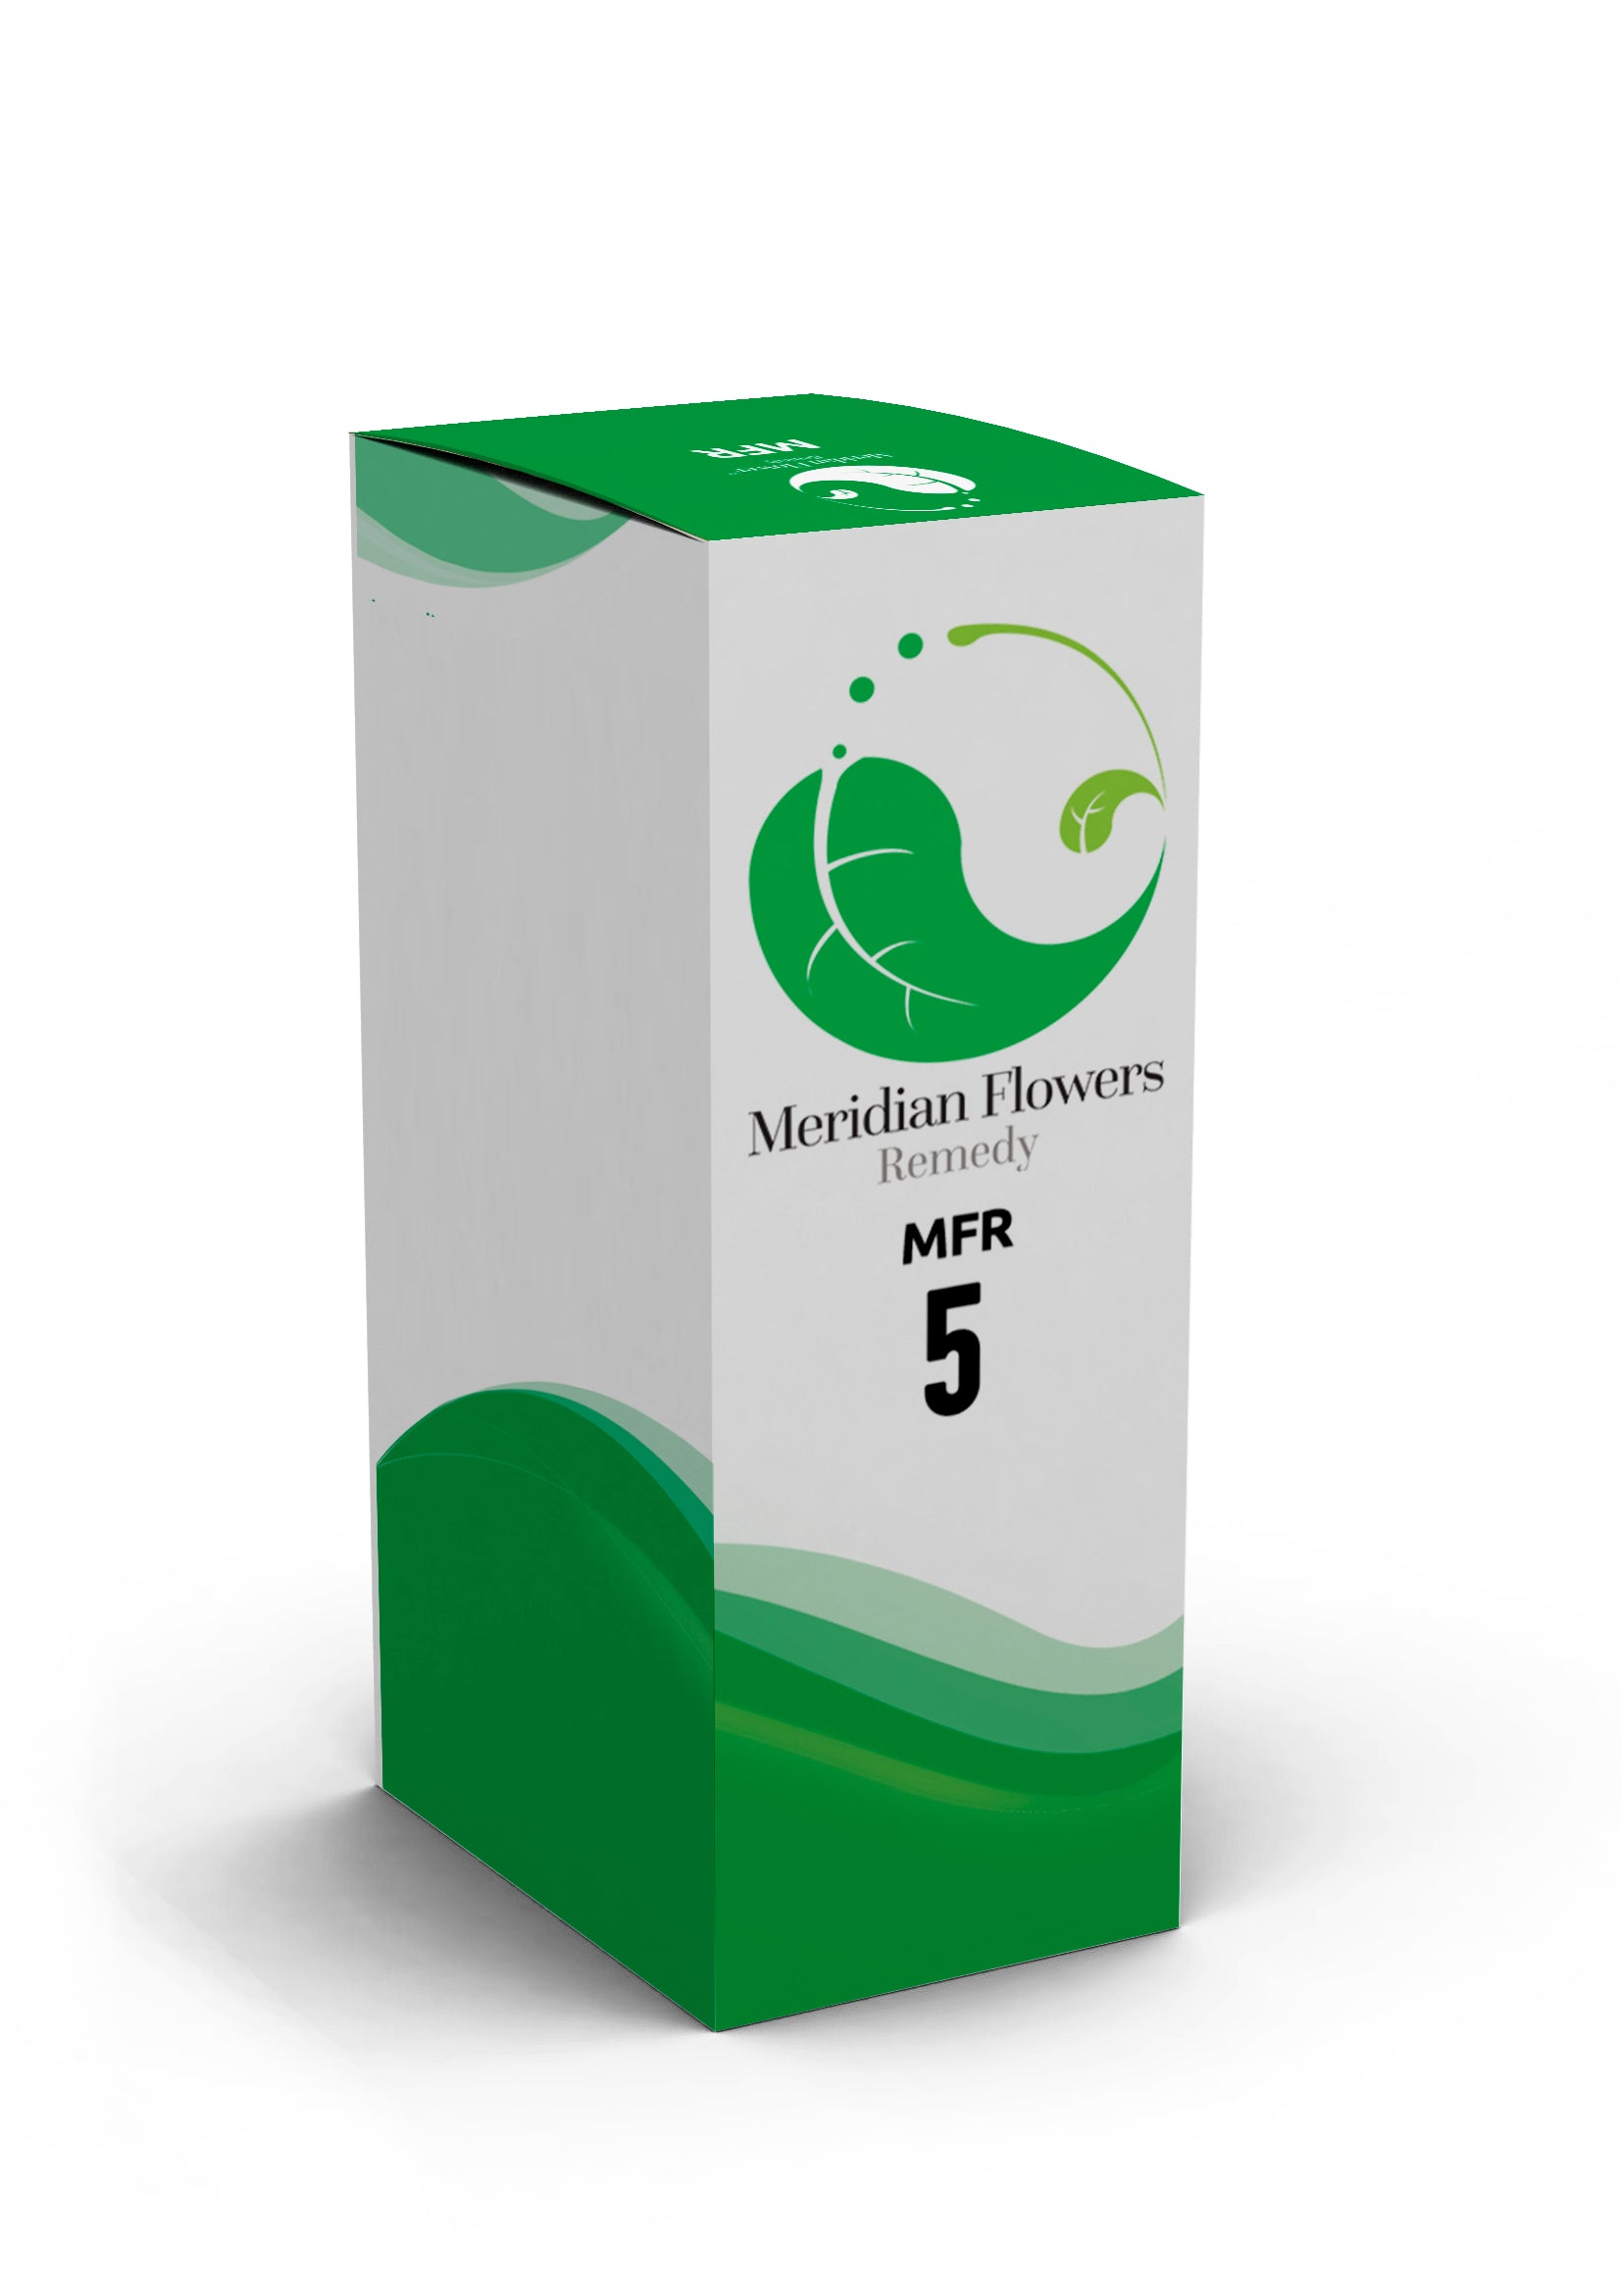 Meridian Flowers Remedy - MFR 5